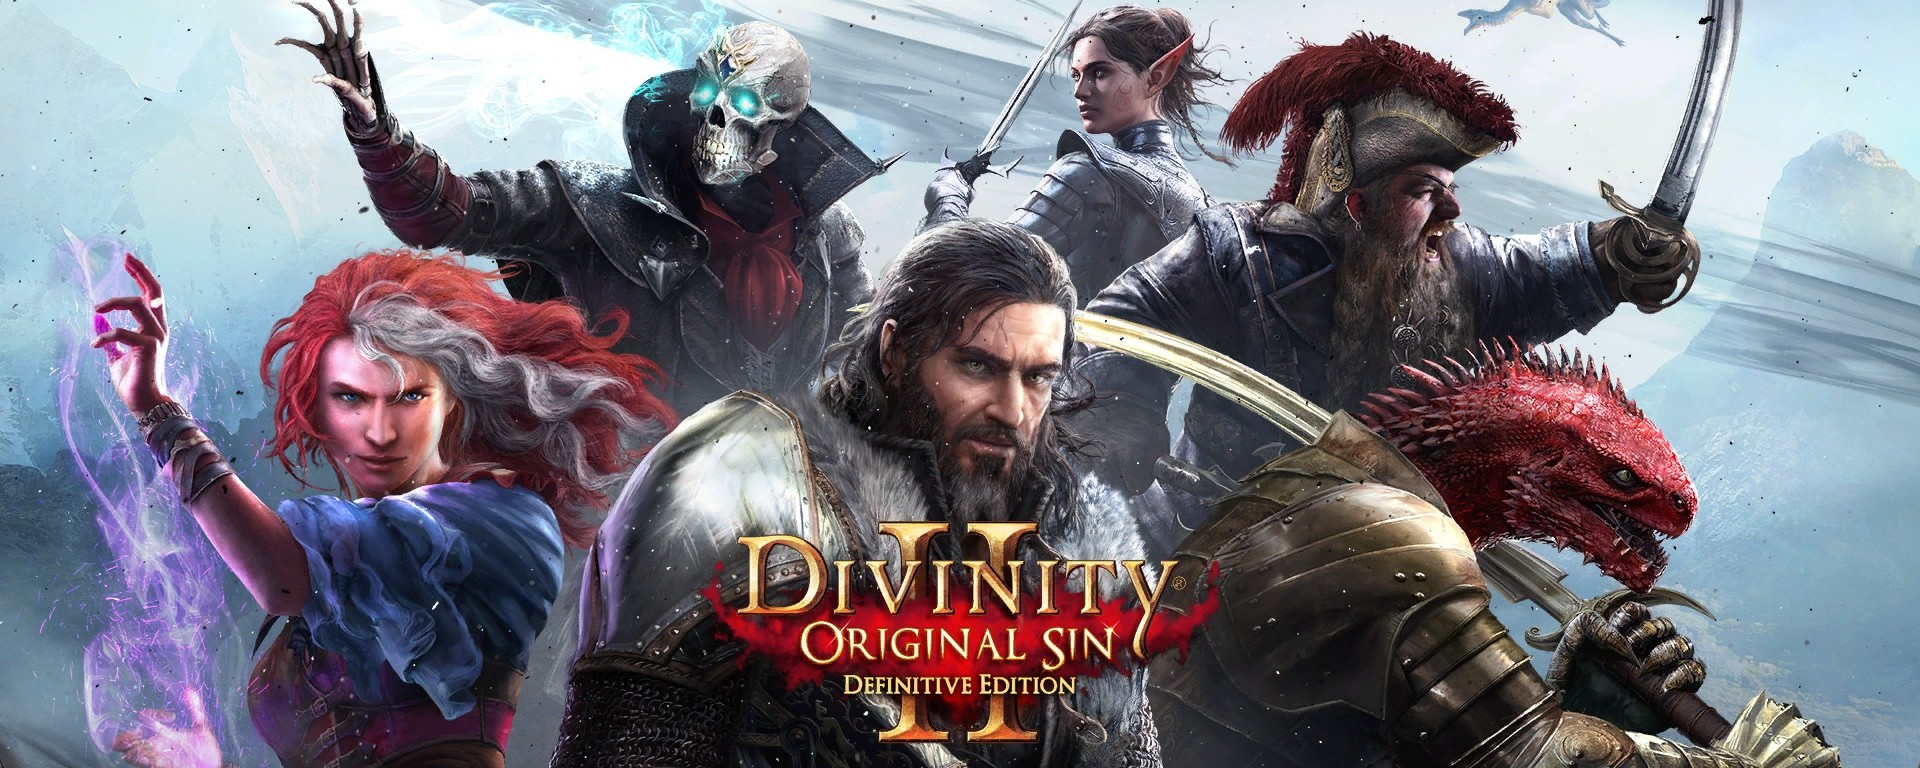 5 Ways To Play: Divinity Original Sin 2 – Definitive Edition (Part 2